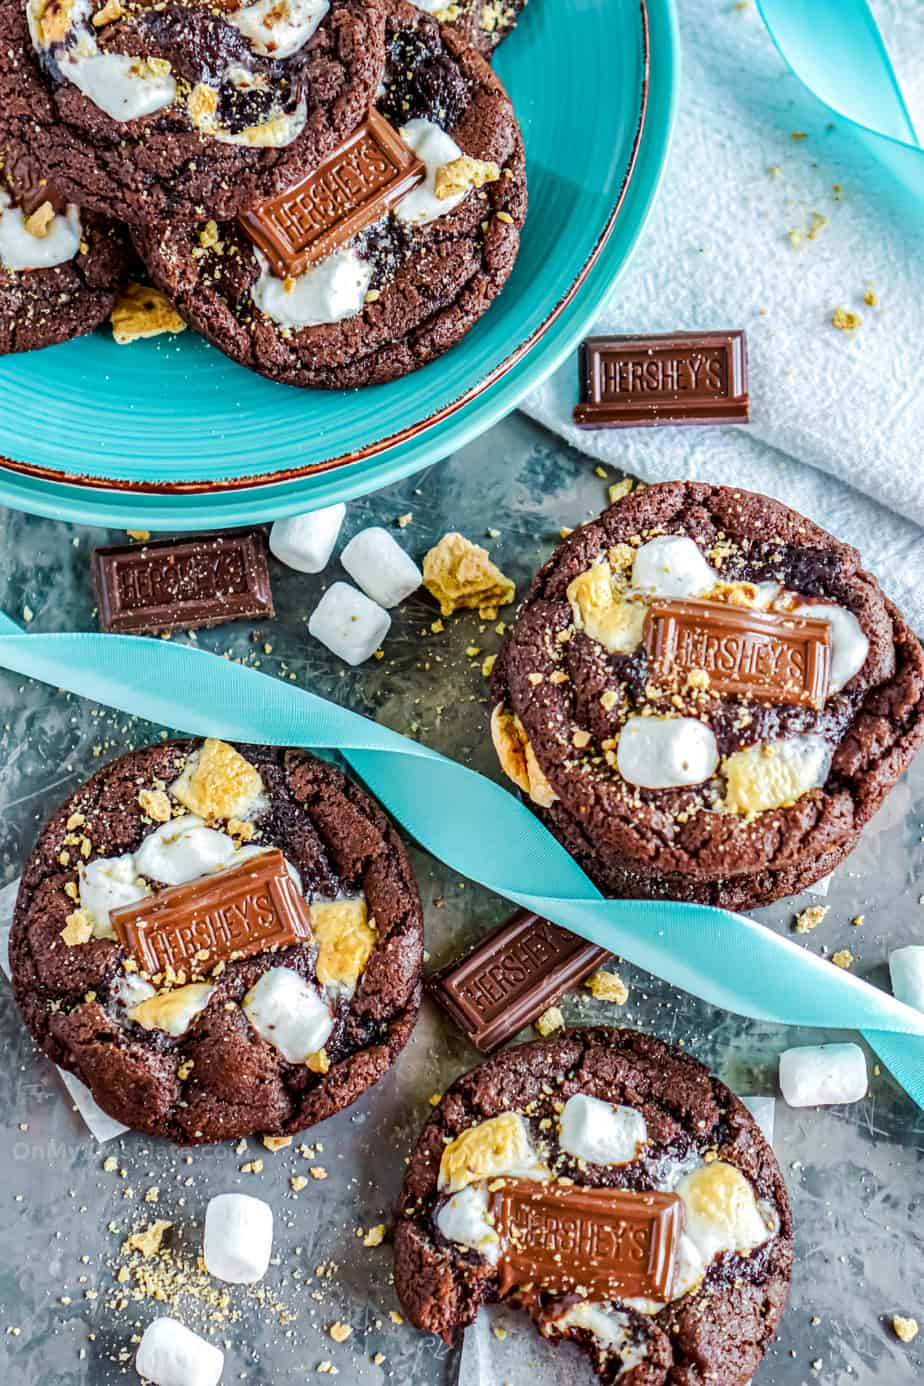 chocolate marshamllow smores cookies on a plate and on a table, one cookie with a bite.